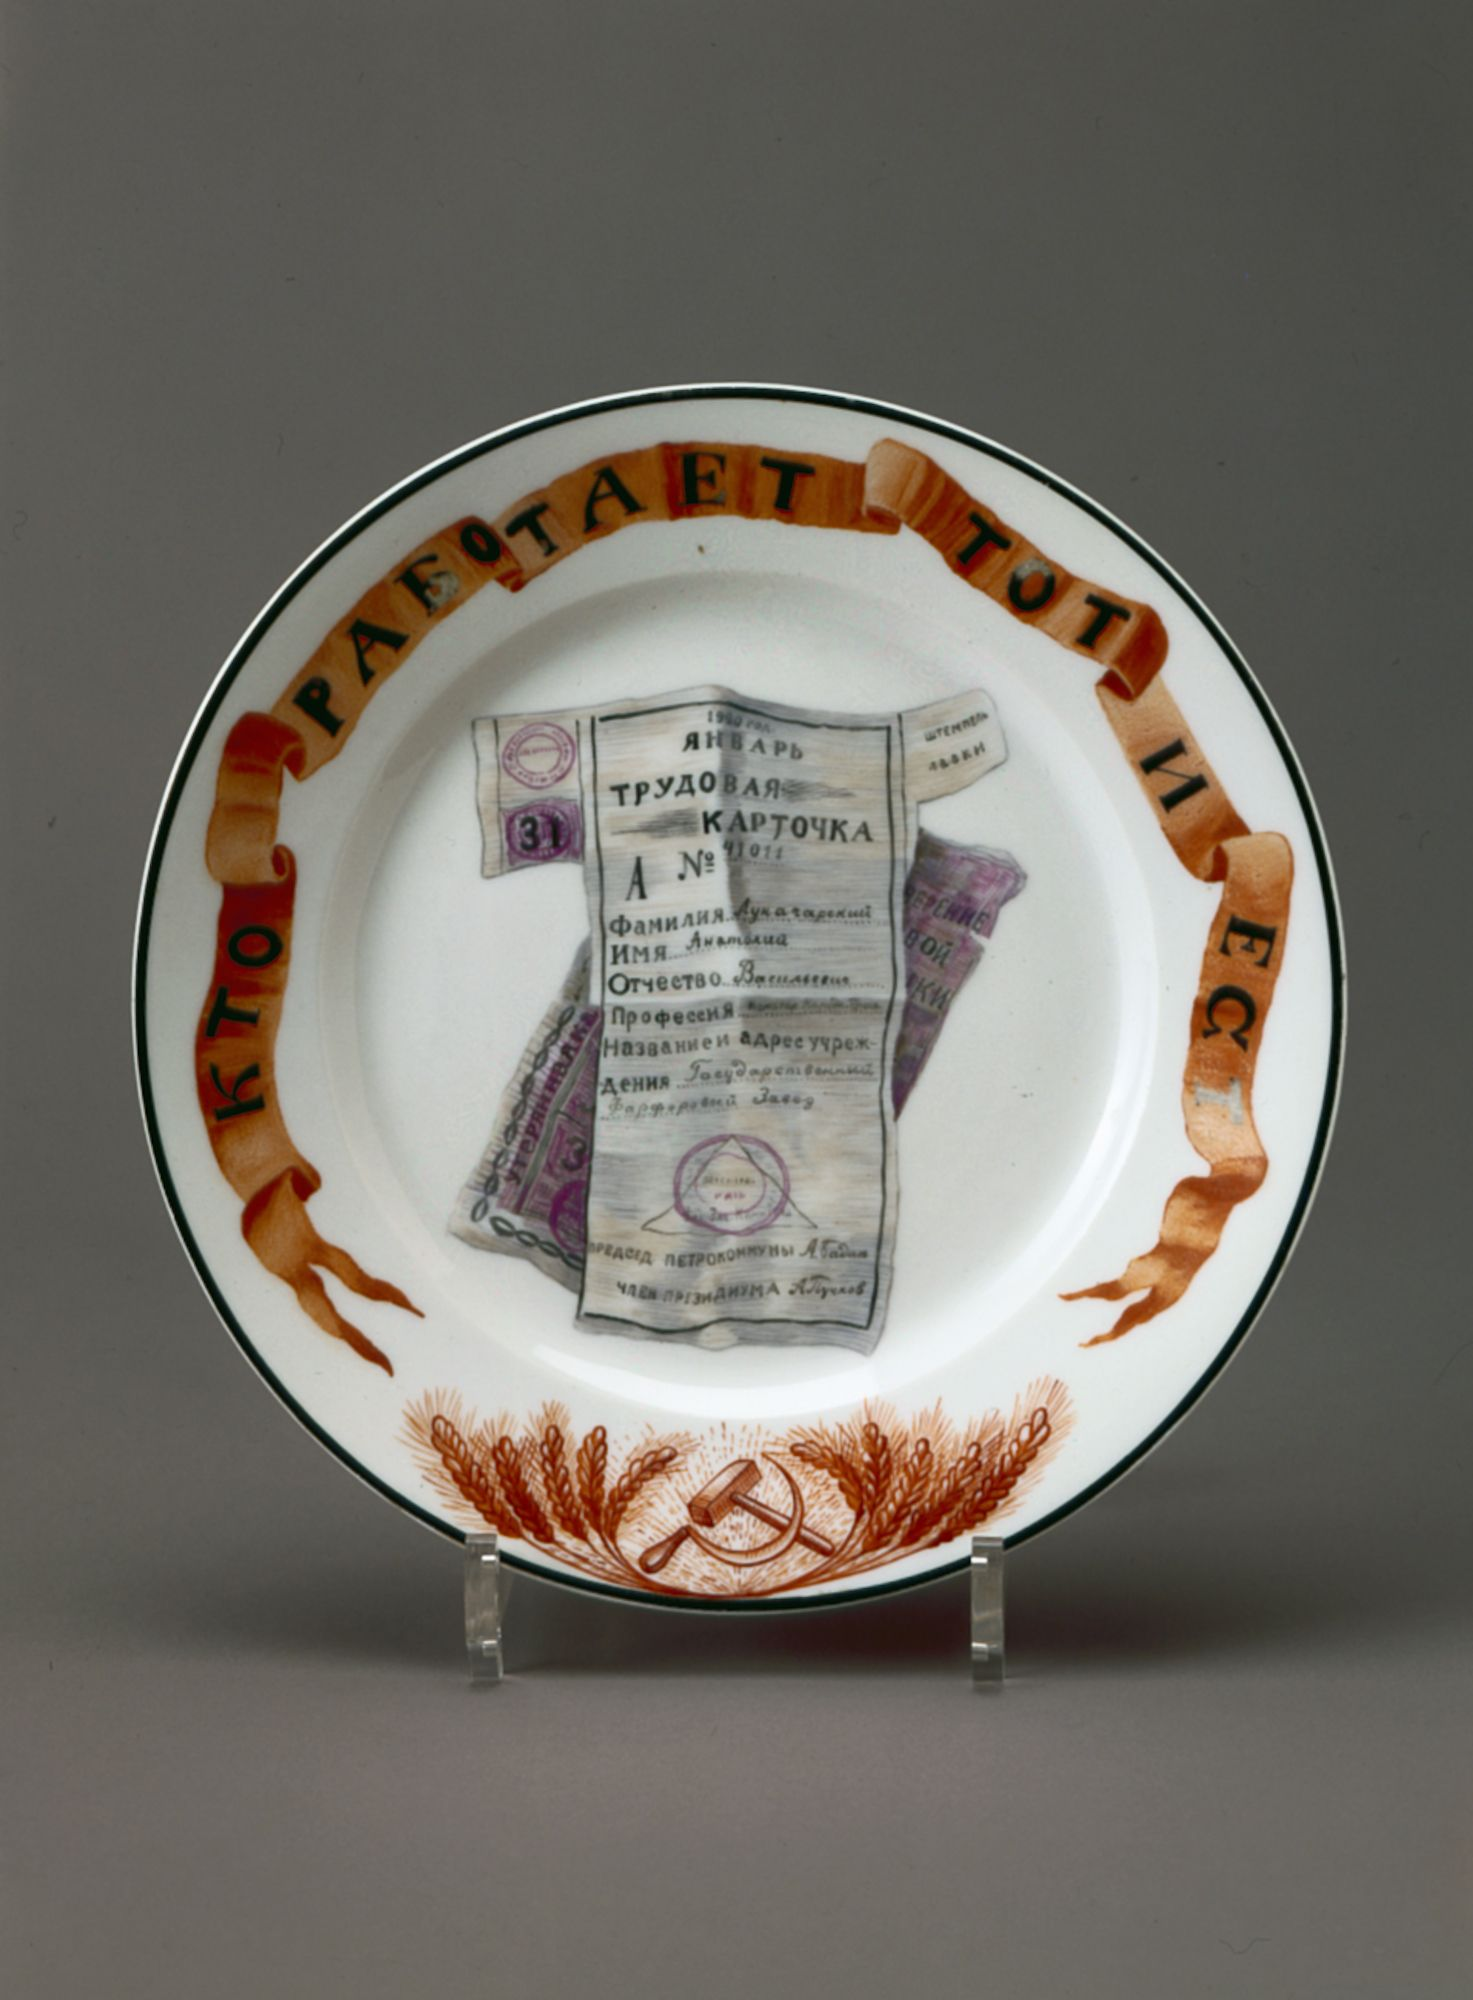 """Plate """"Food-Ration Card"""" with inspiration """"He who does not work neither shall he eat"""". V. Timofeev. State Porcelain Factory. 1920."""